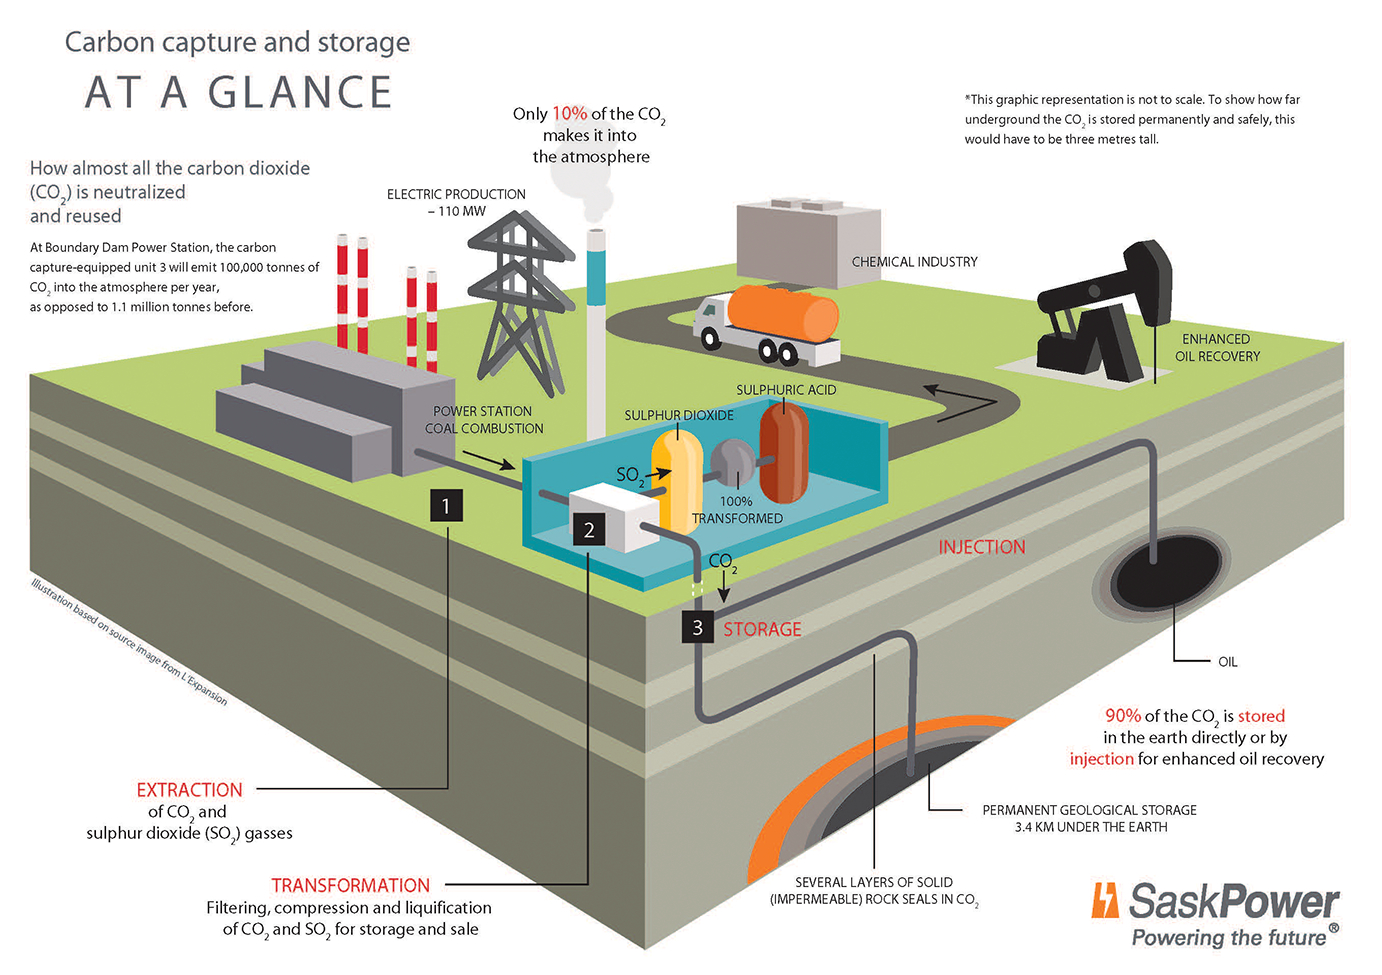 oil industry fossil fuels environment earth